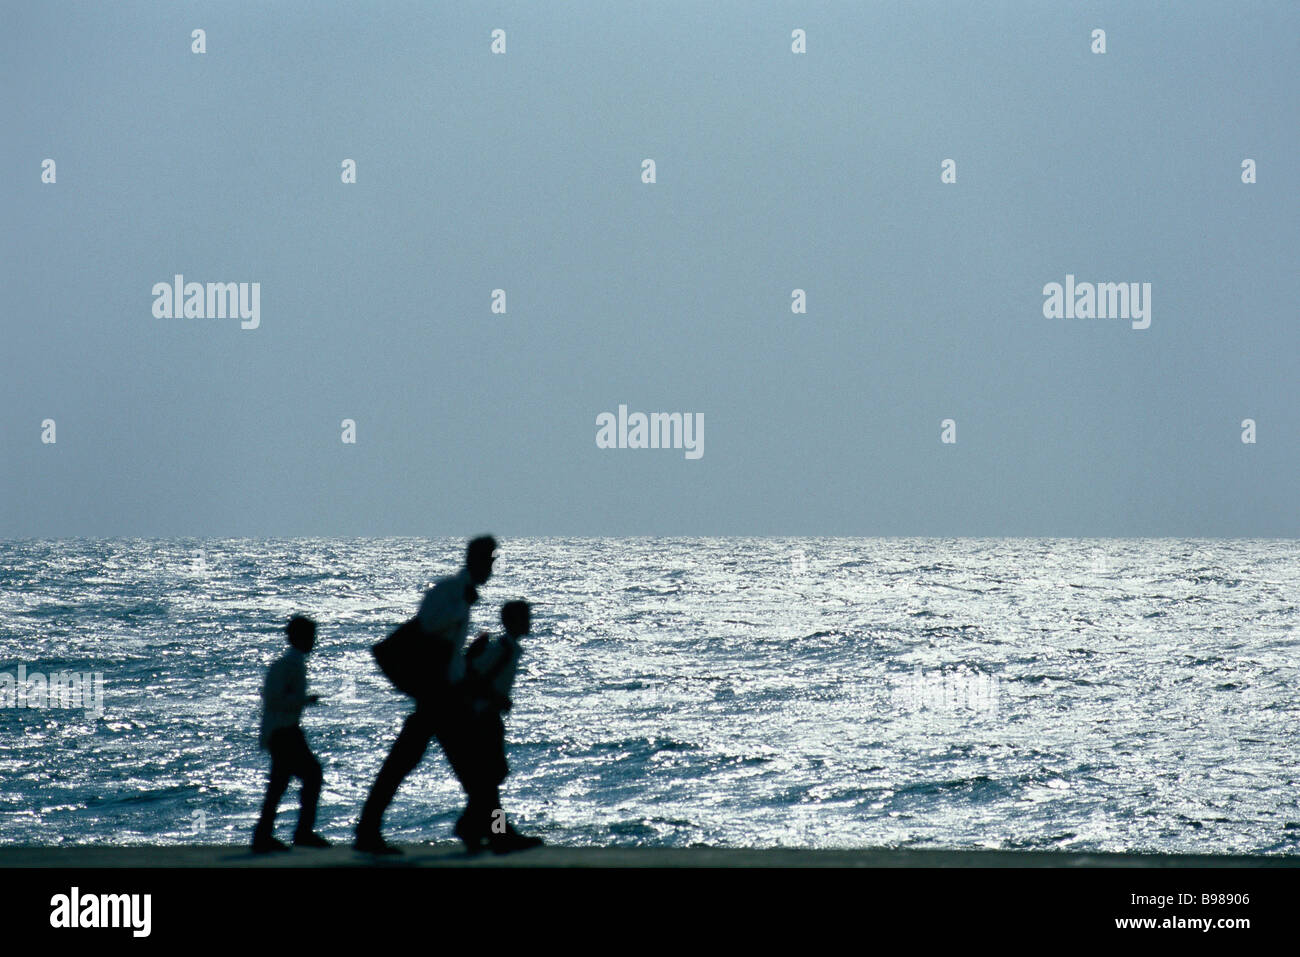 Man walking with two sons, silhouetted against ocean - Stock Image